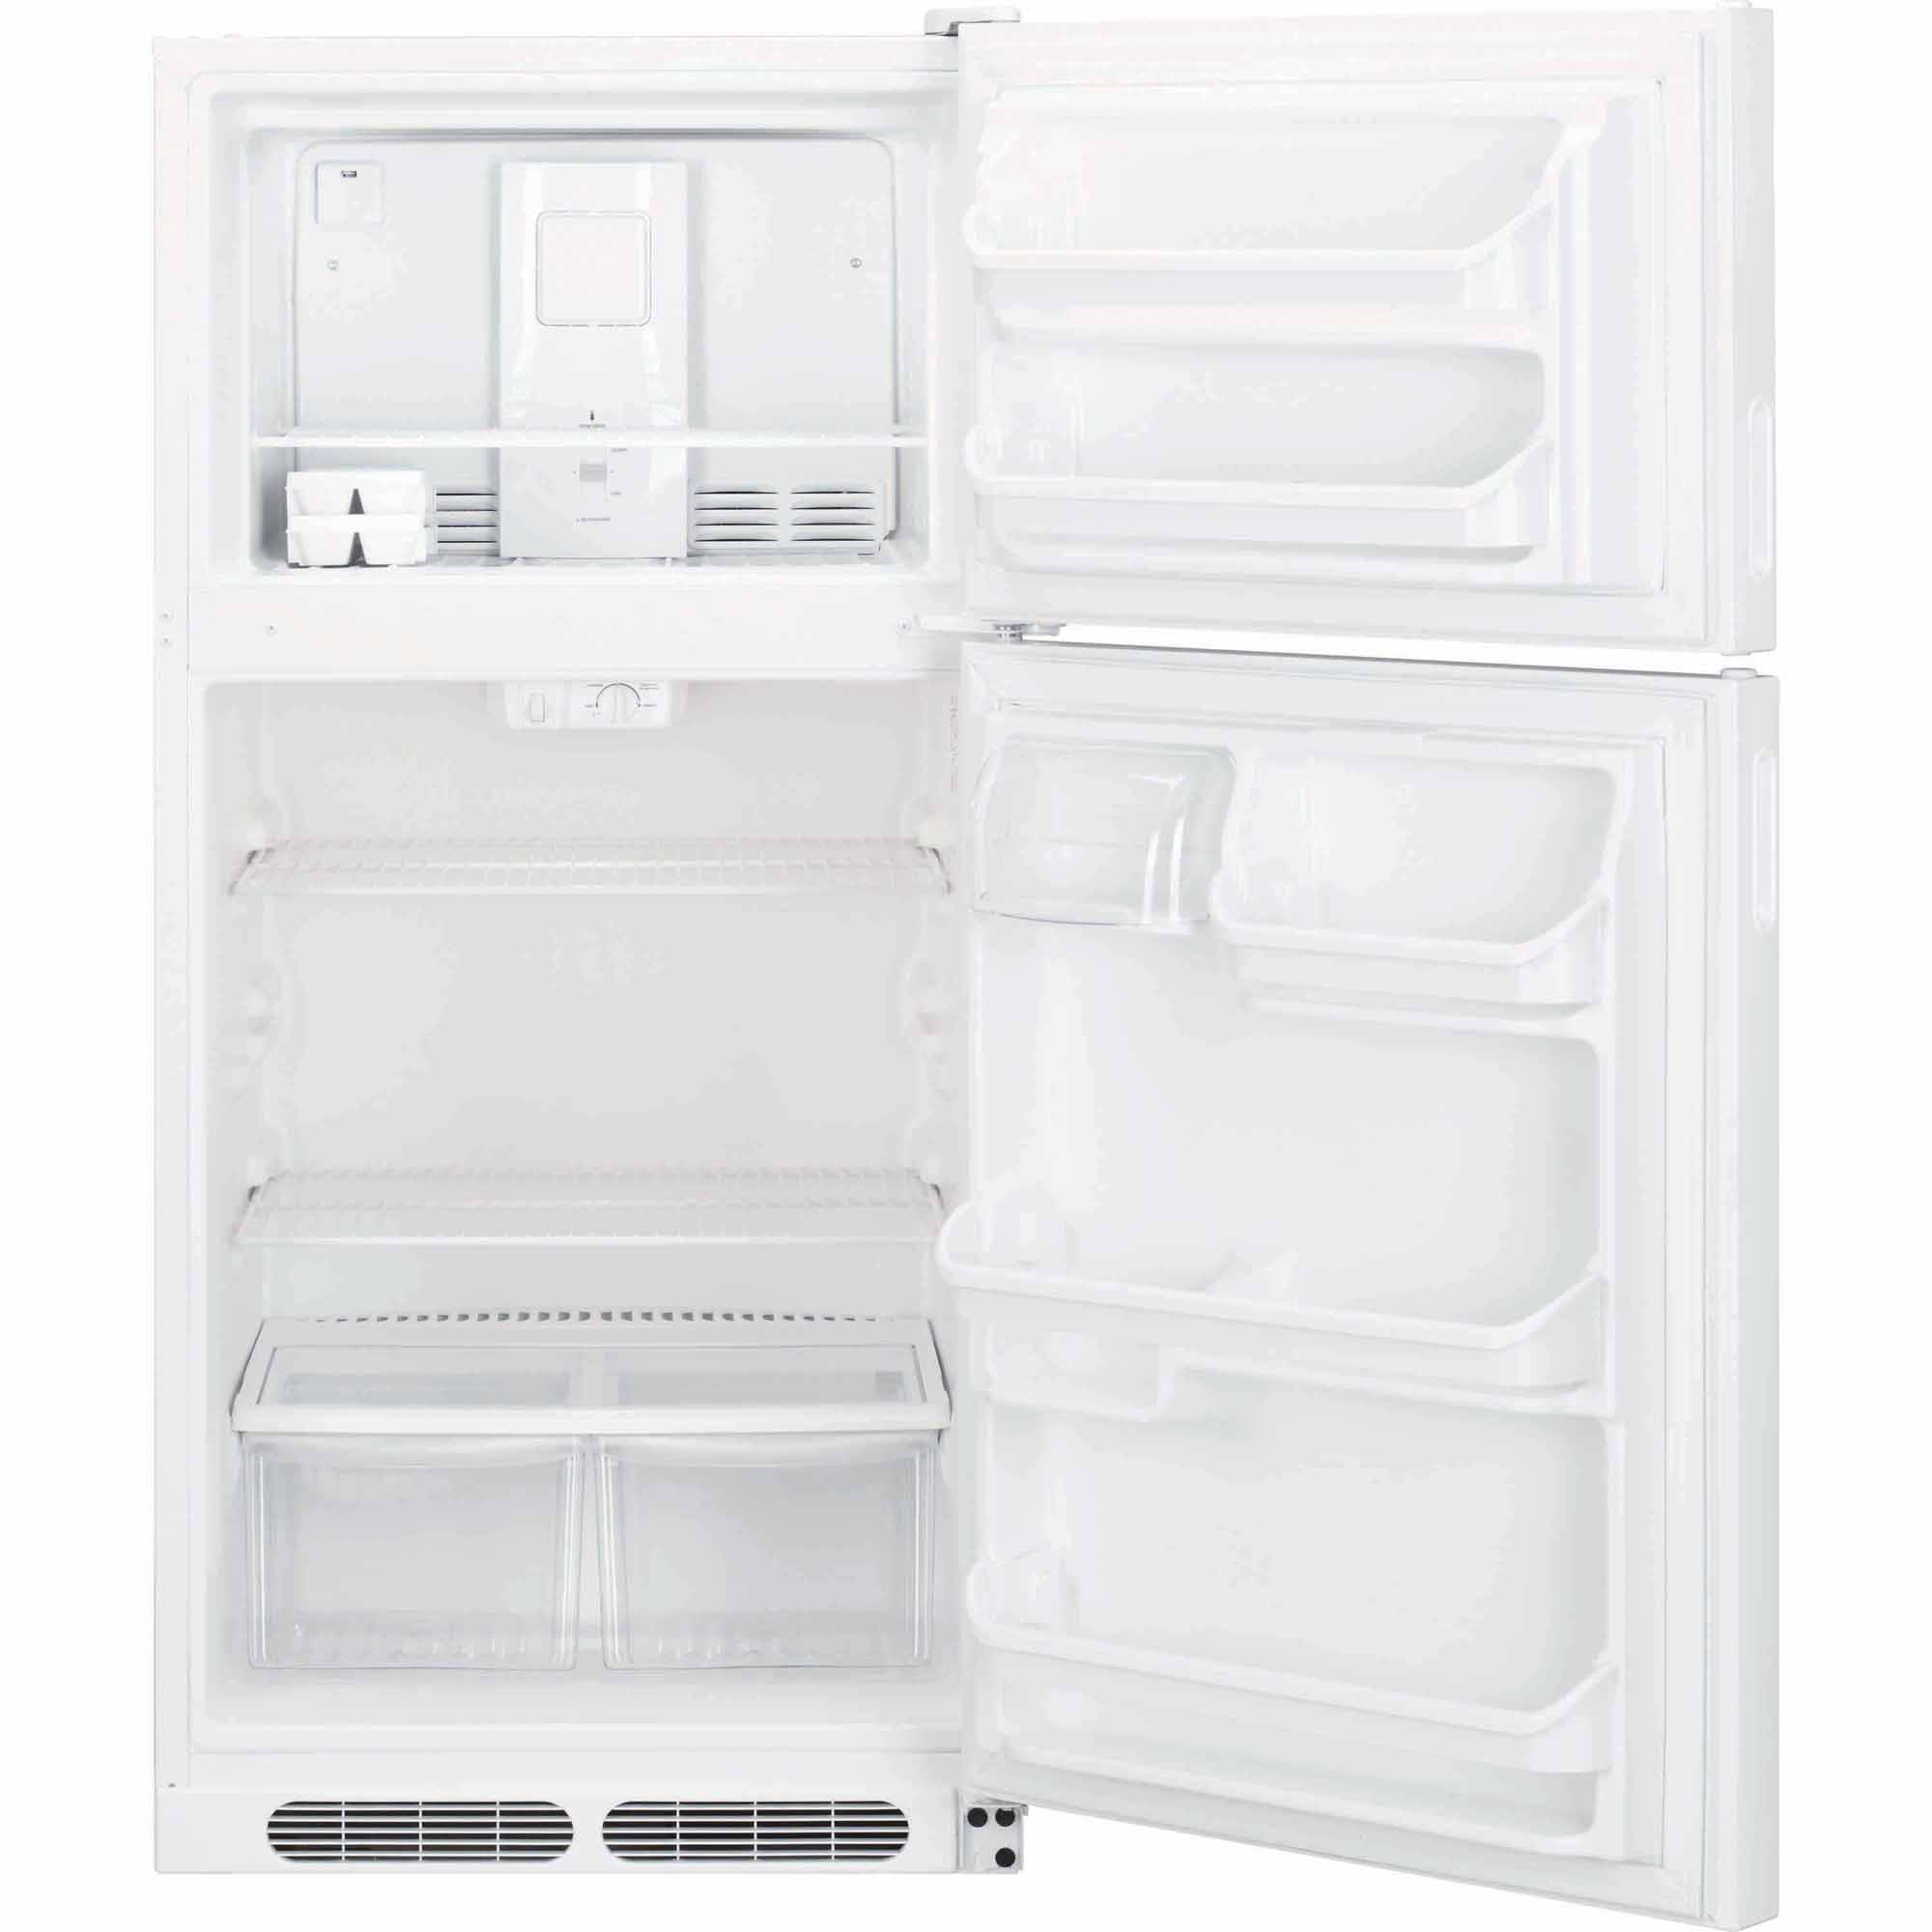 Kenmore 14.6 cu. ft. Top Mount Refrigerator - White